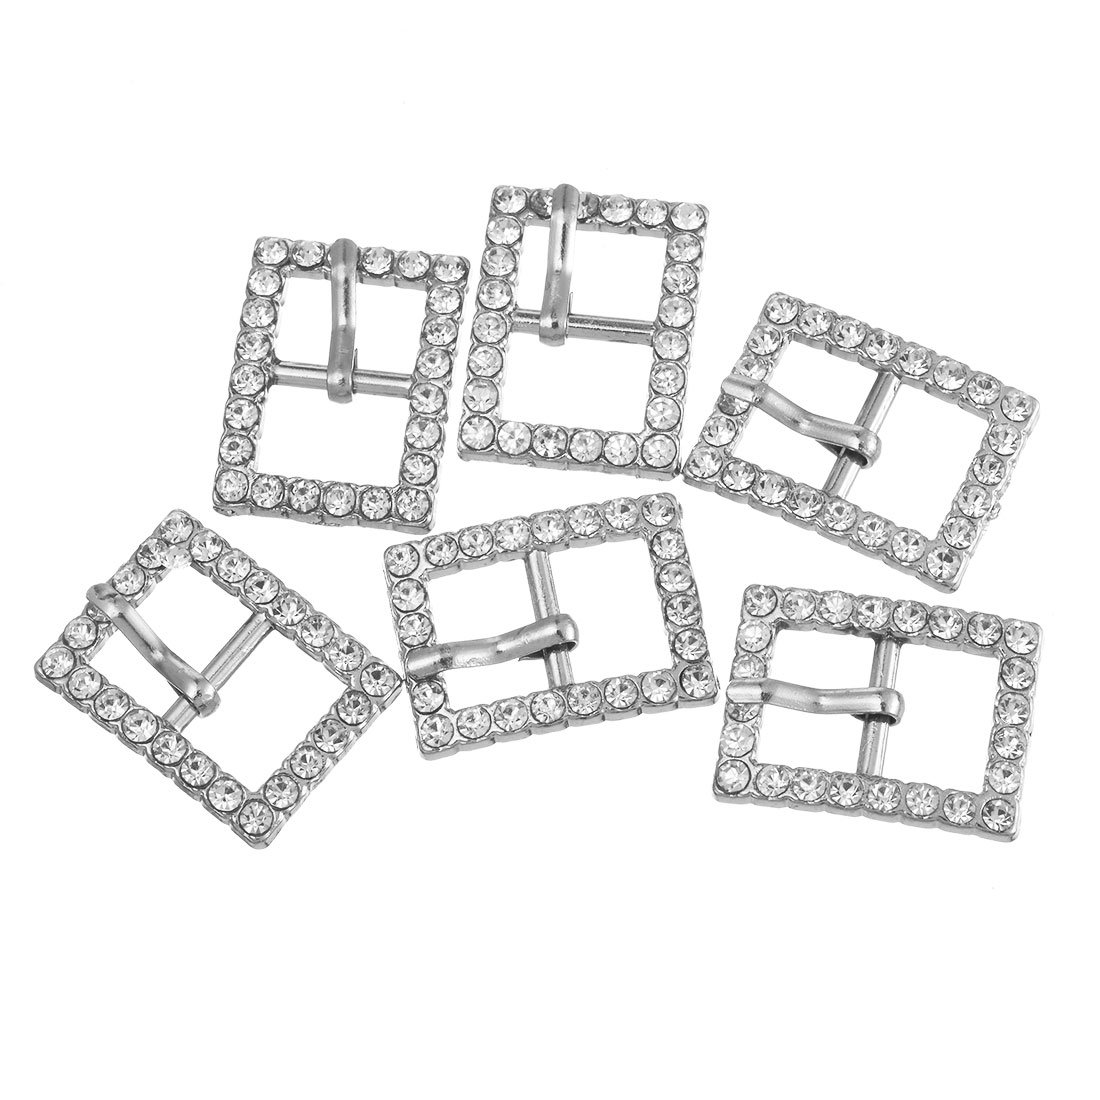 Souarts Silver Tone Color Rectangle Rhinestone Shoe Buckle Accessory Findings Pack of 10pcs